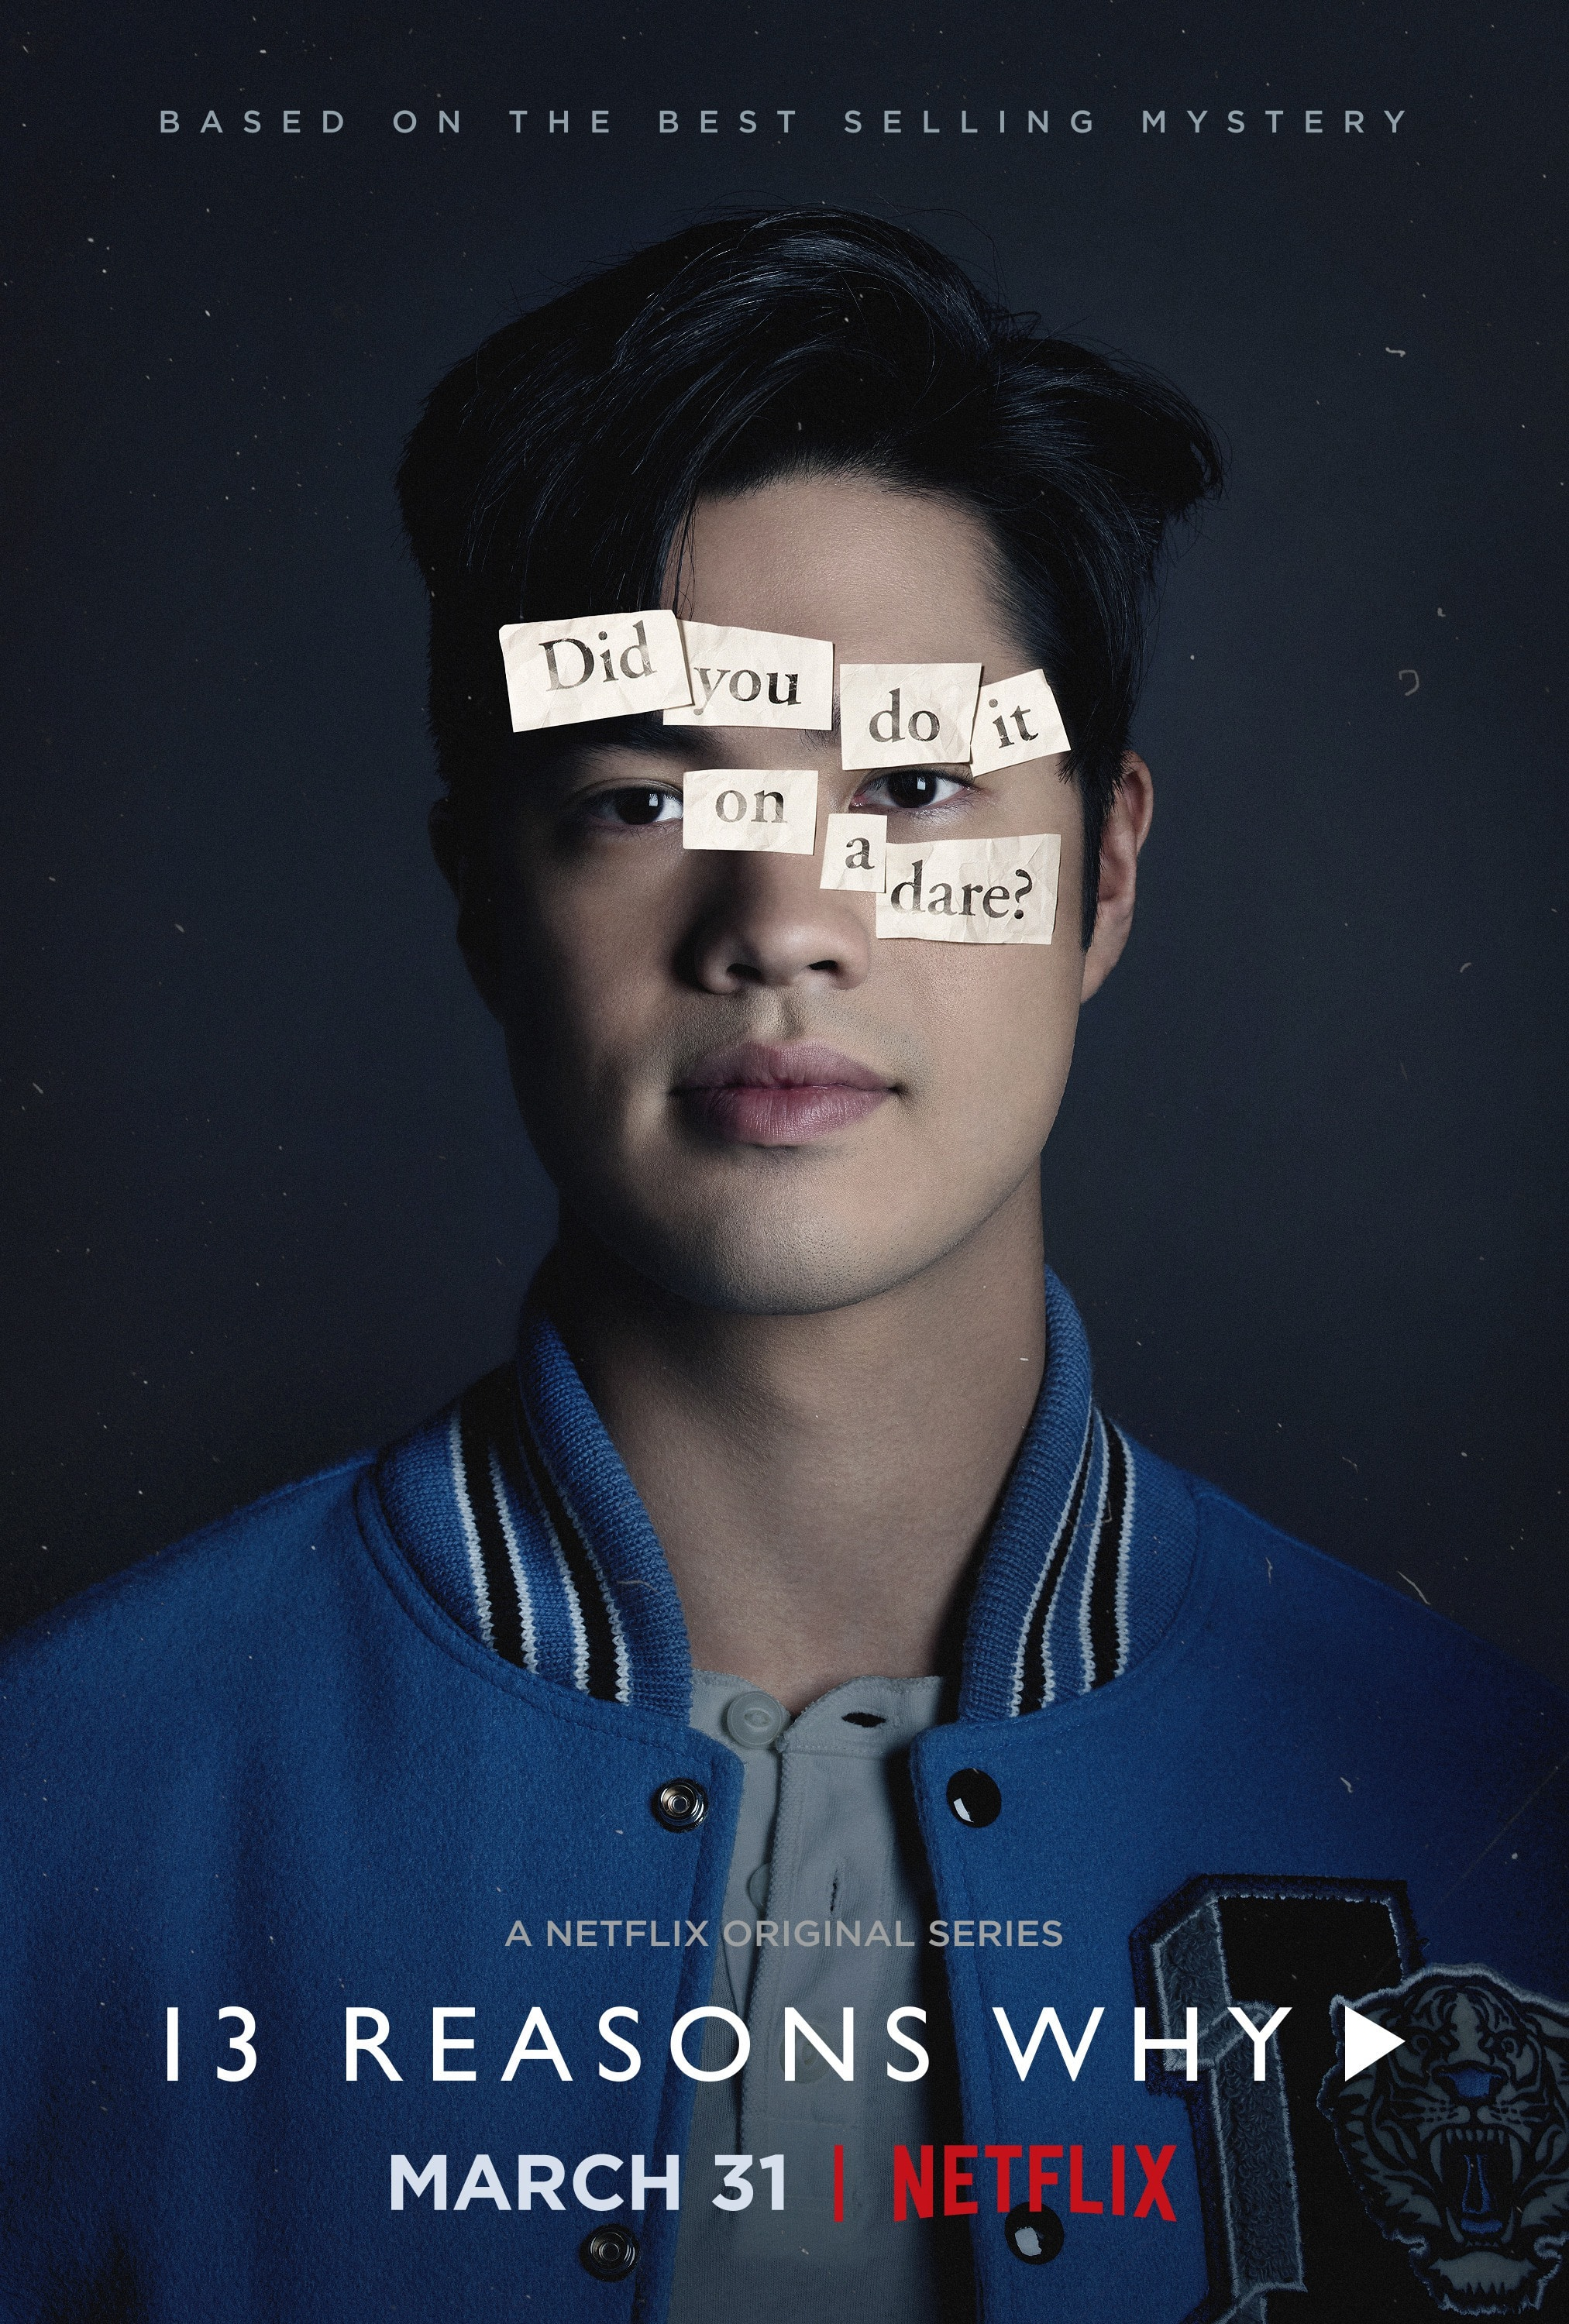 13 reasons why poster Zach